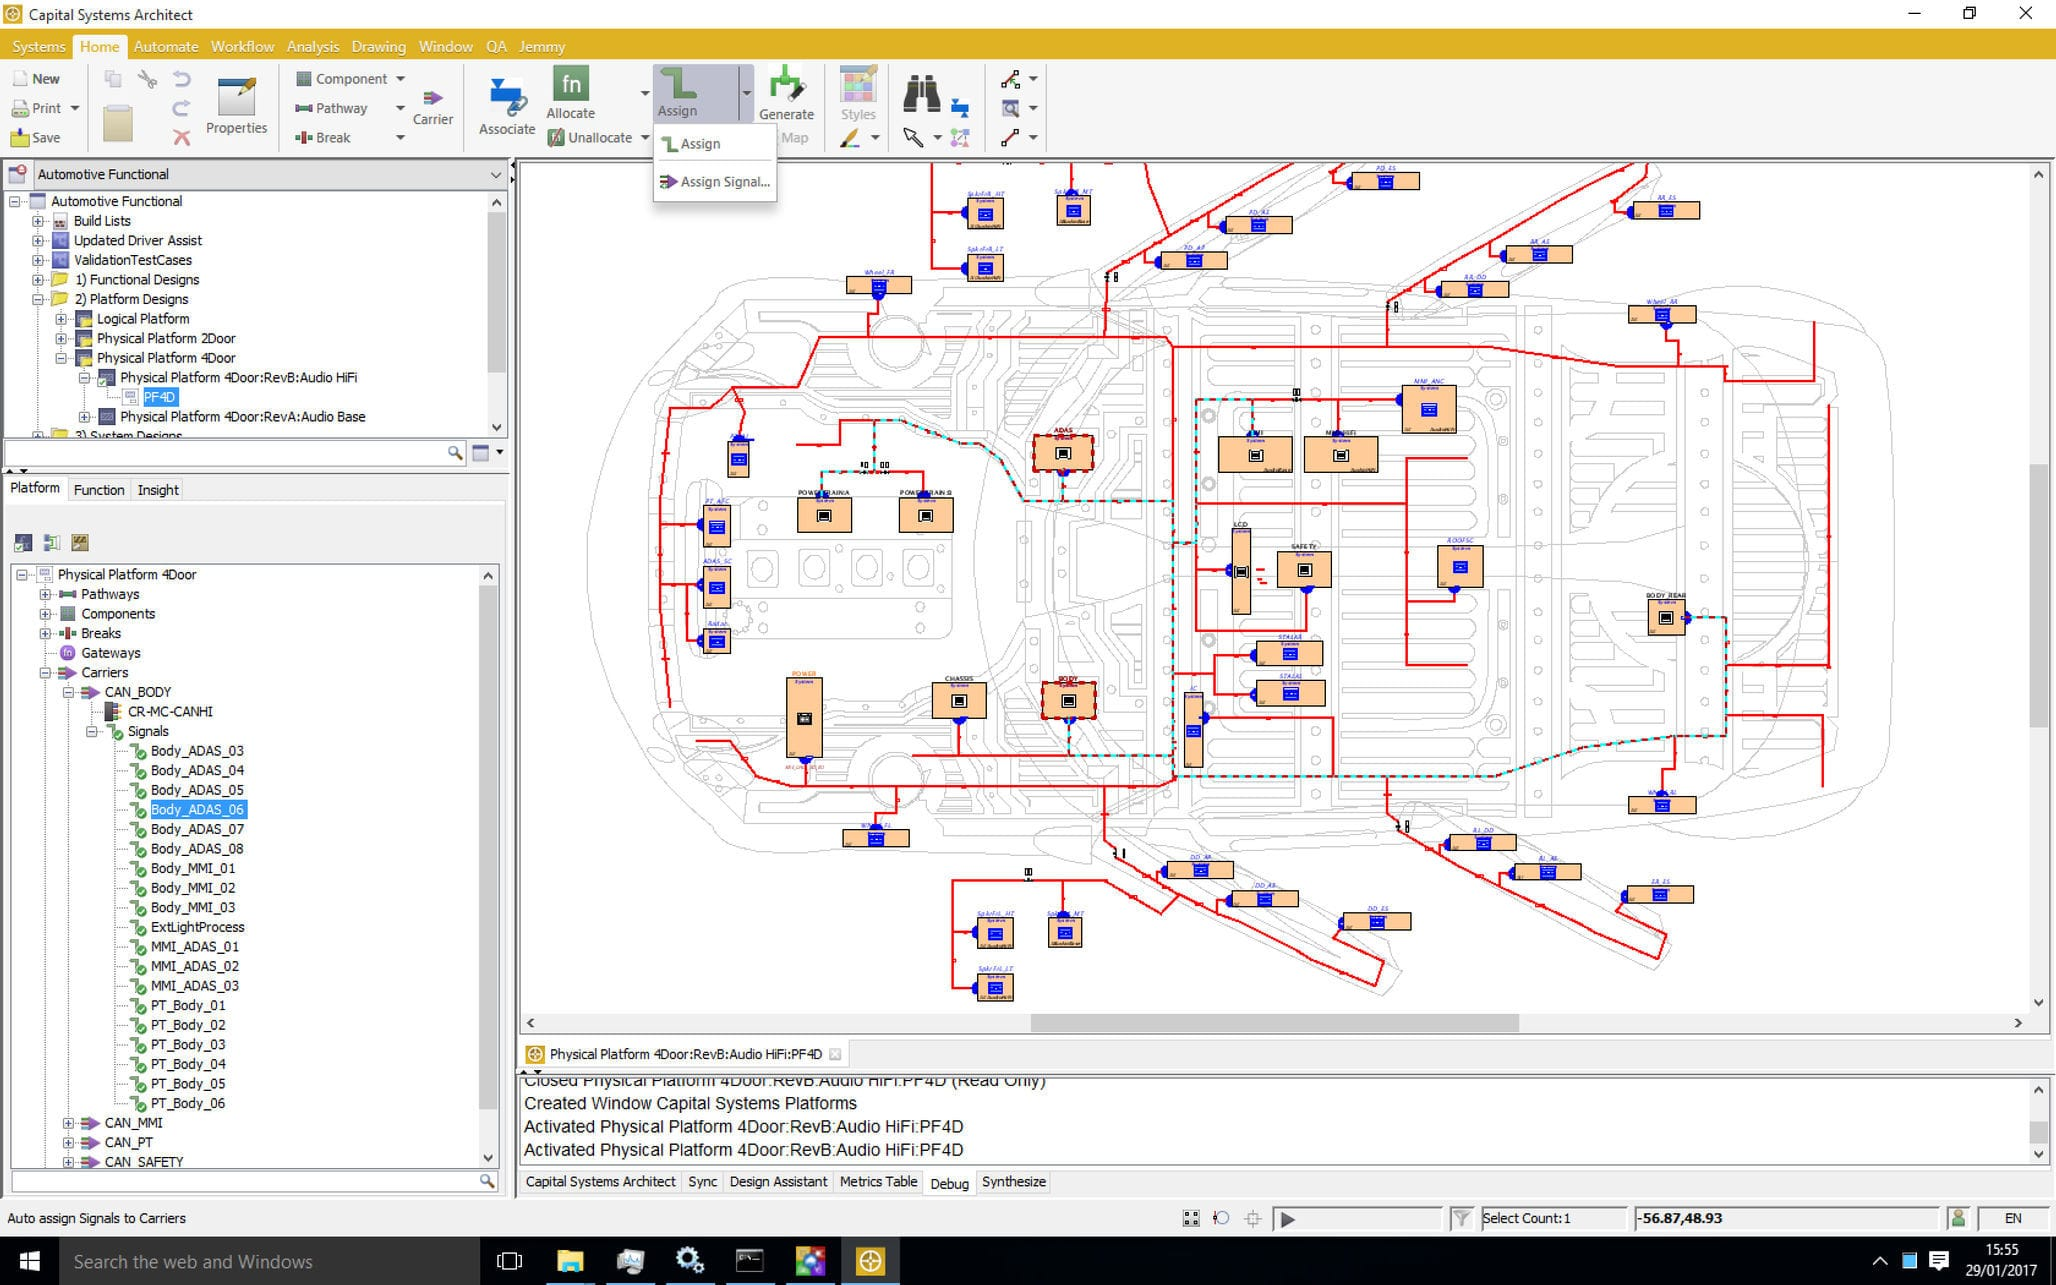 automotive wiring diagram drawing software zo 8293  software for drawing electrical circuits wiring diagram  drawing electrical circuits wiring diagram